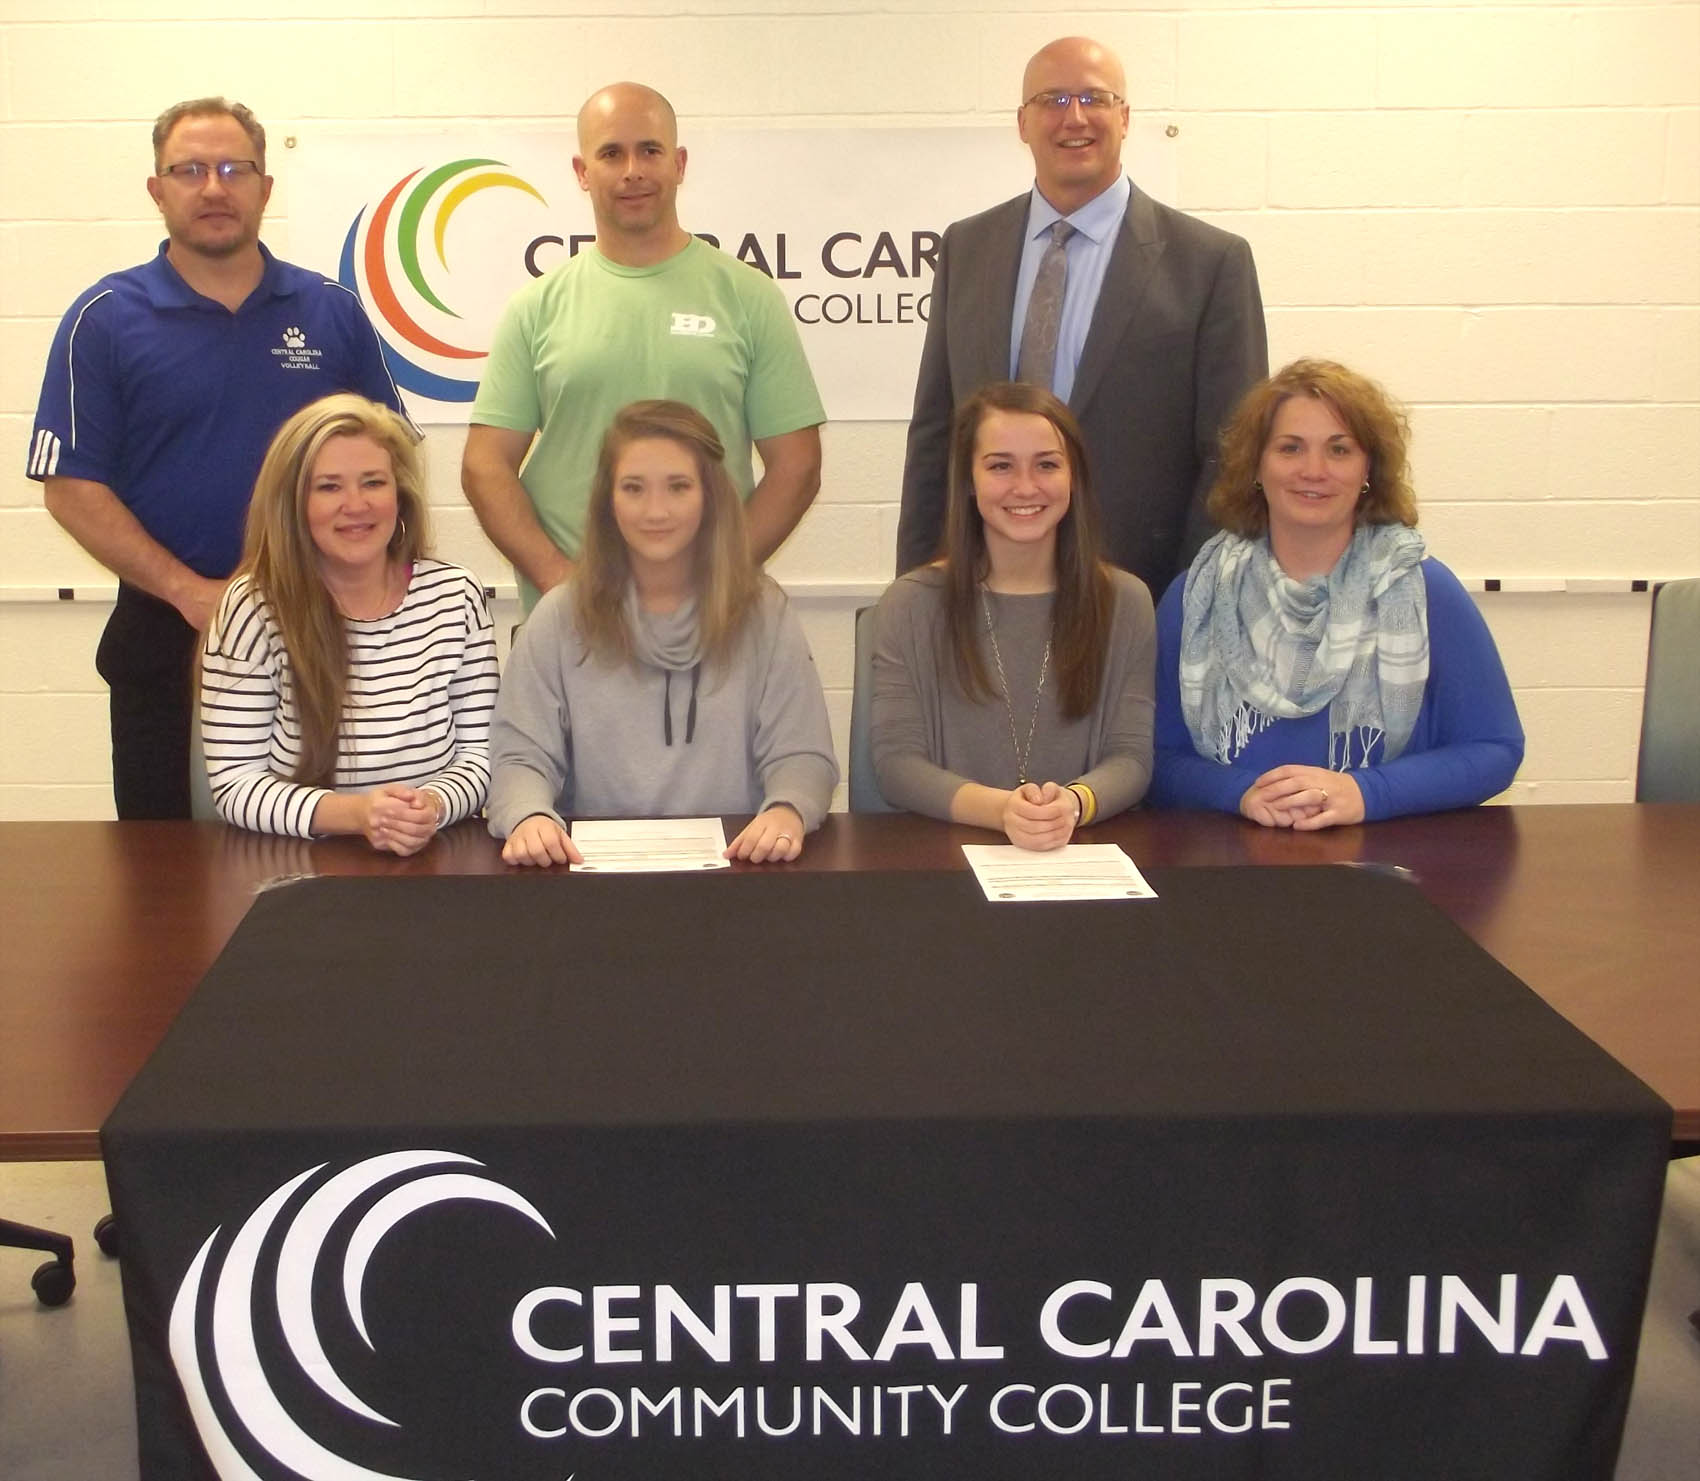 Click to enlarge,  Brooke Young (seated, second from left) and Elissa Neal (seated, second from right) have signed letters of intent to play volleyball at Central Carolina Community College. Pictured with the two athletes are, left to right: front row, Young's mother Cindy Ammons, Brooke Young, Elissa Neal, and Neal's mother Tanya Neal; back row, CCCC Volleyball Coach Bill Carter, Young's father Brit Young, and Neal's father Mike Neal.